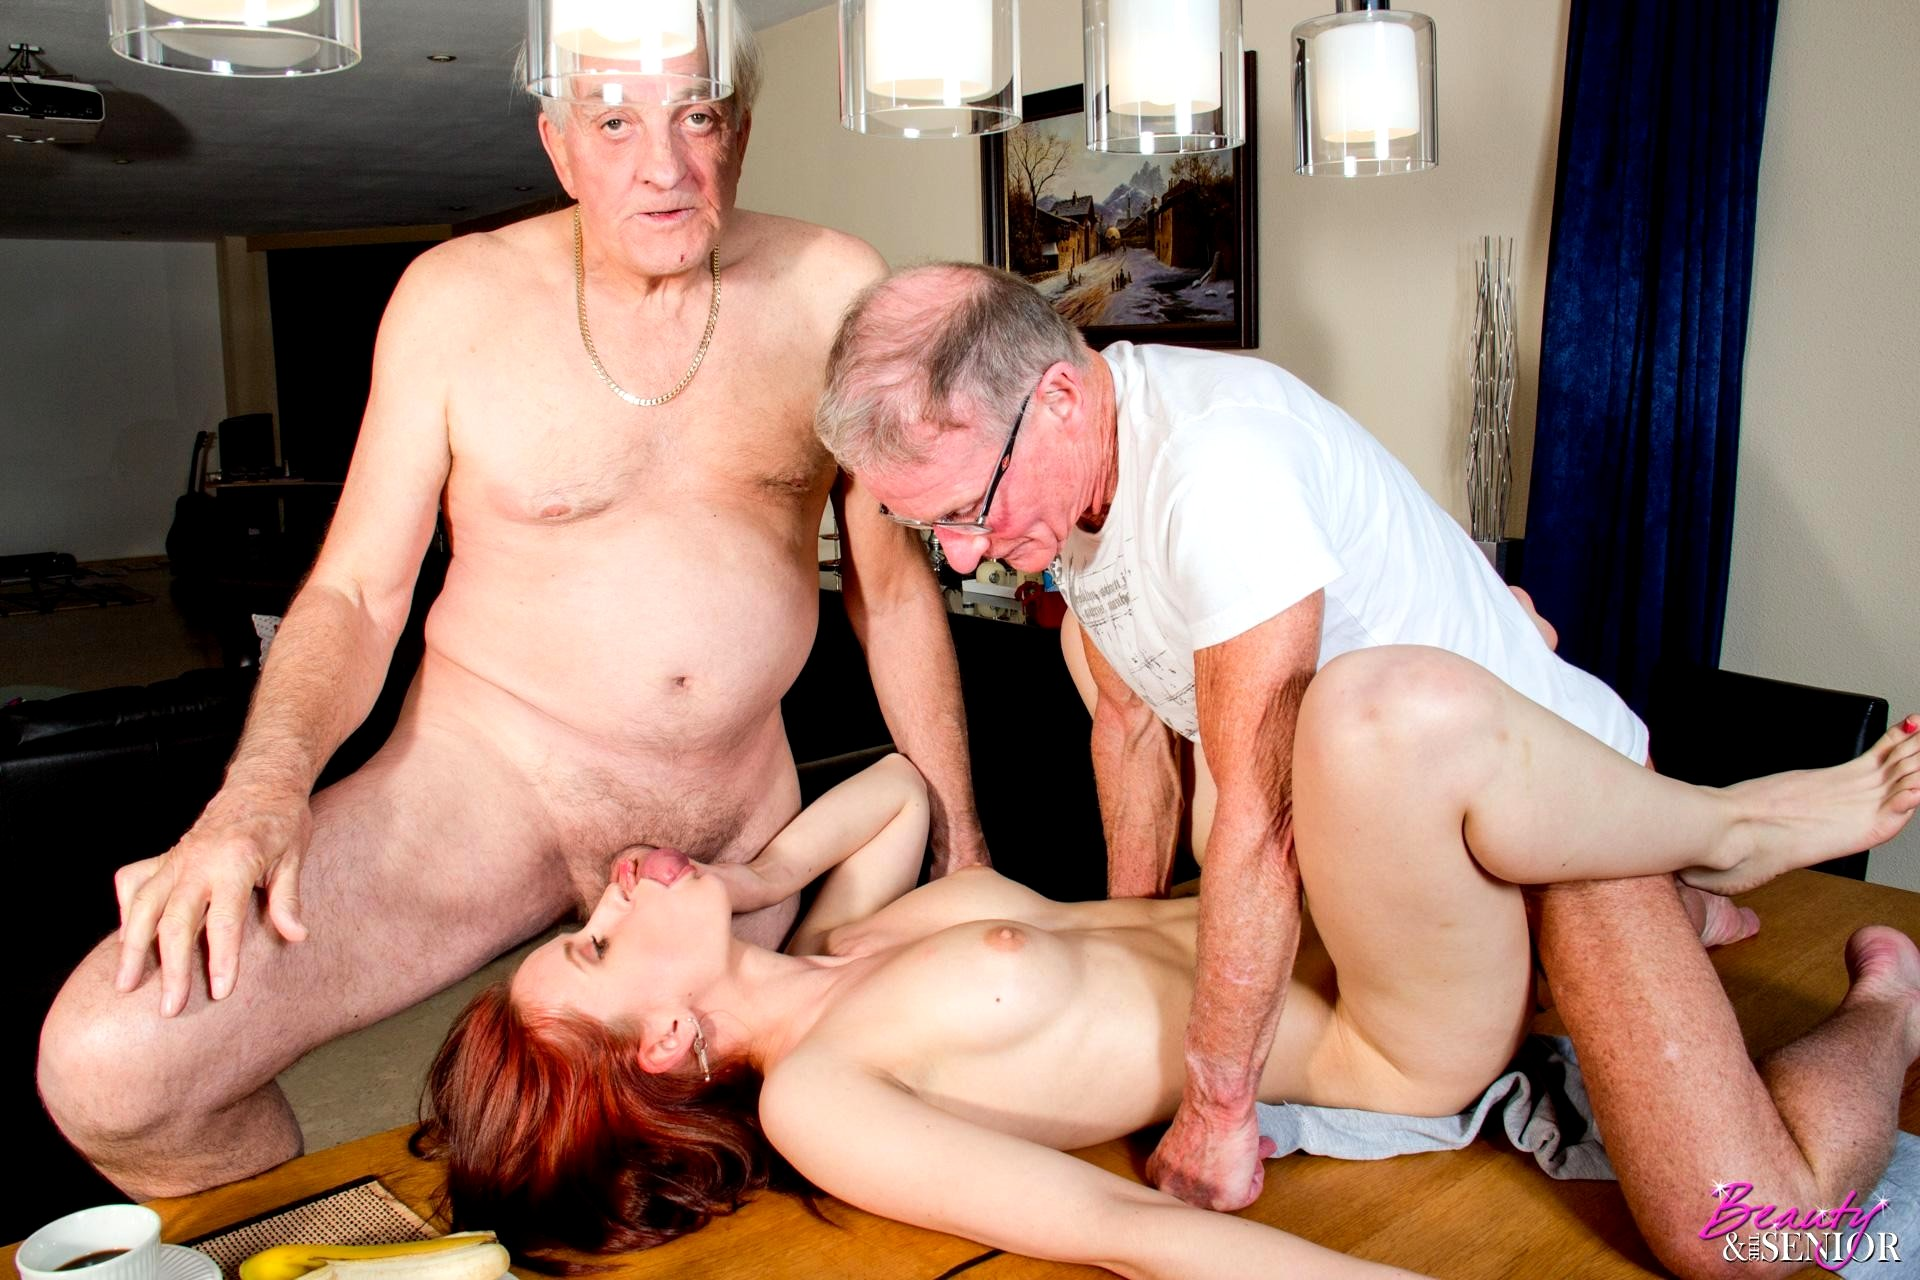 Milf old man cock, beautyful girl and boy